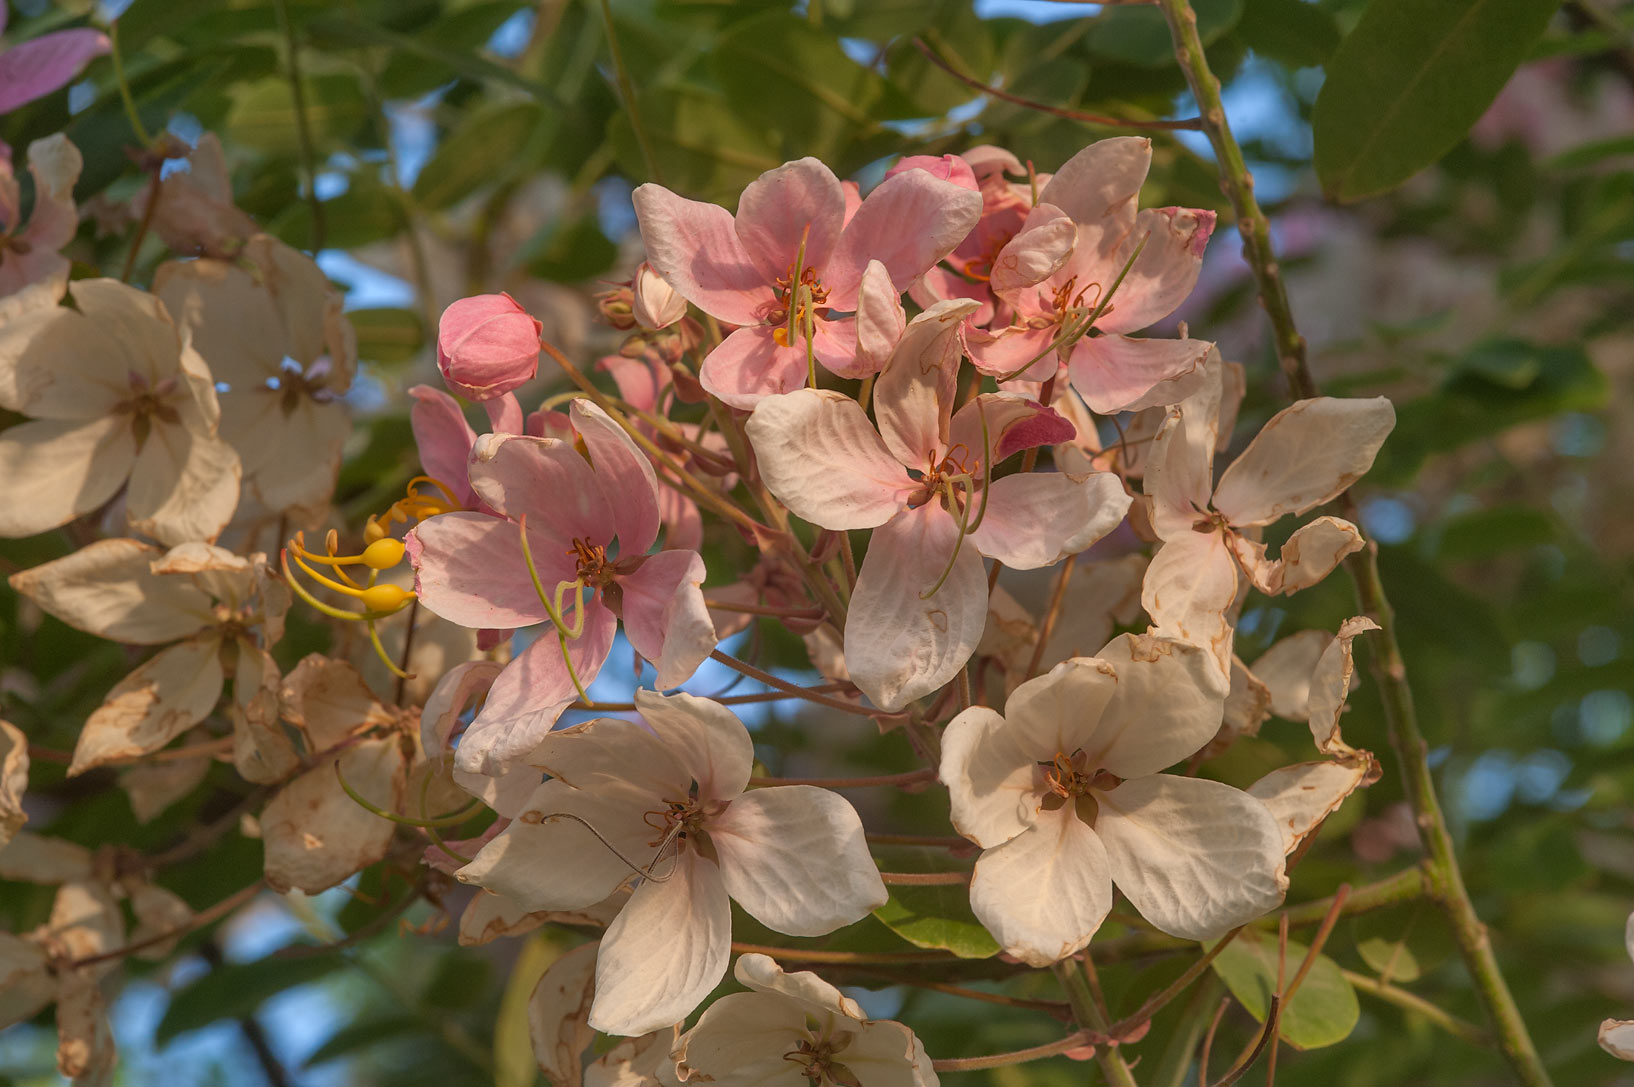 Flowers of pink shower tree (Cassia javanica) in Aspire Park. Doha, Qatar